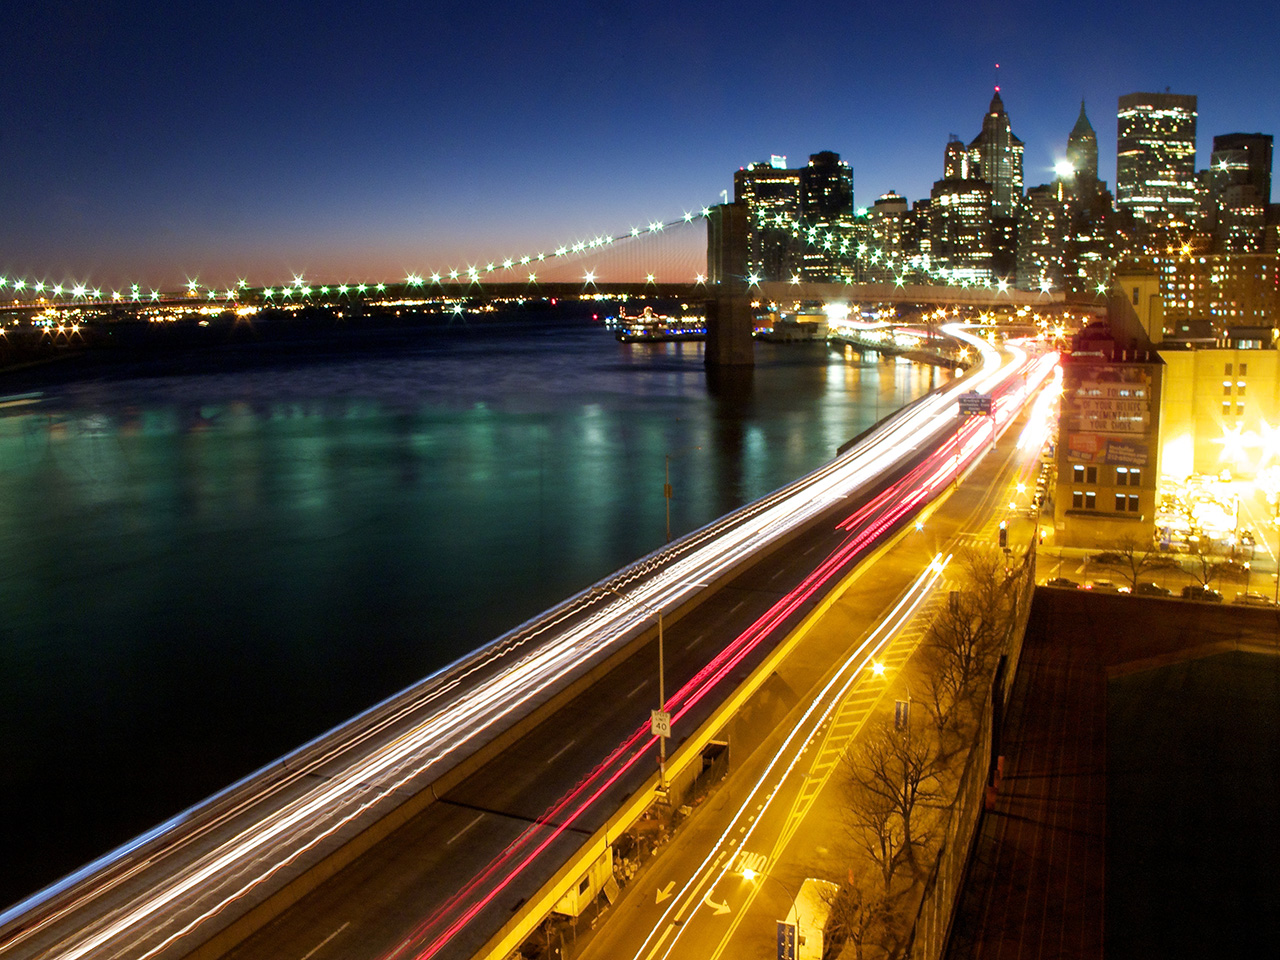 The Brooklyn Bridge and the FDR Drive, as seen from the Manhattan Bridge